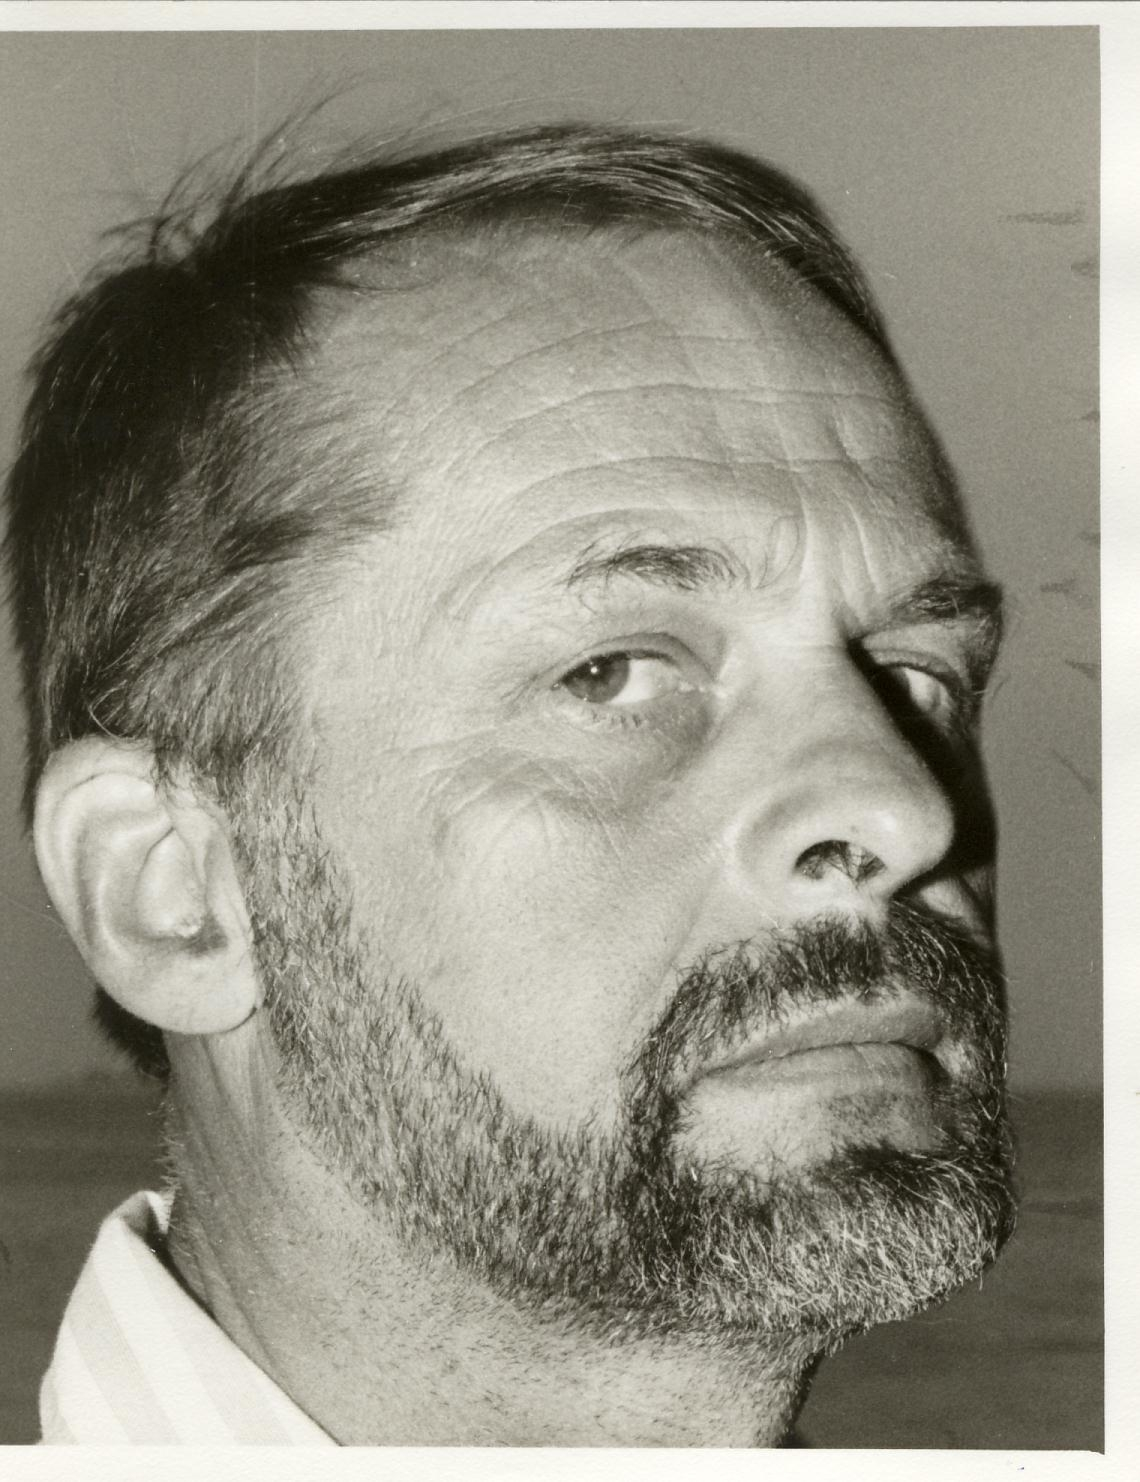 Black and white image of Victor Prus